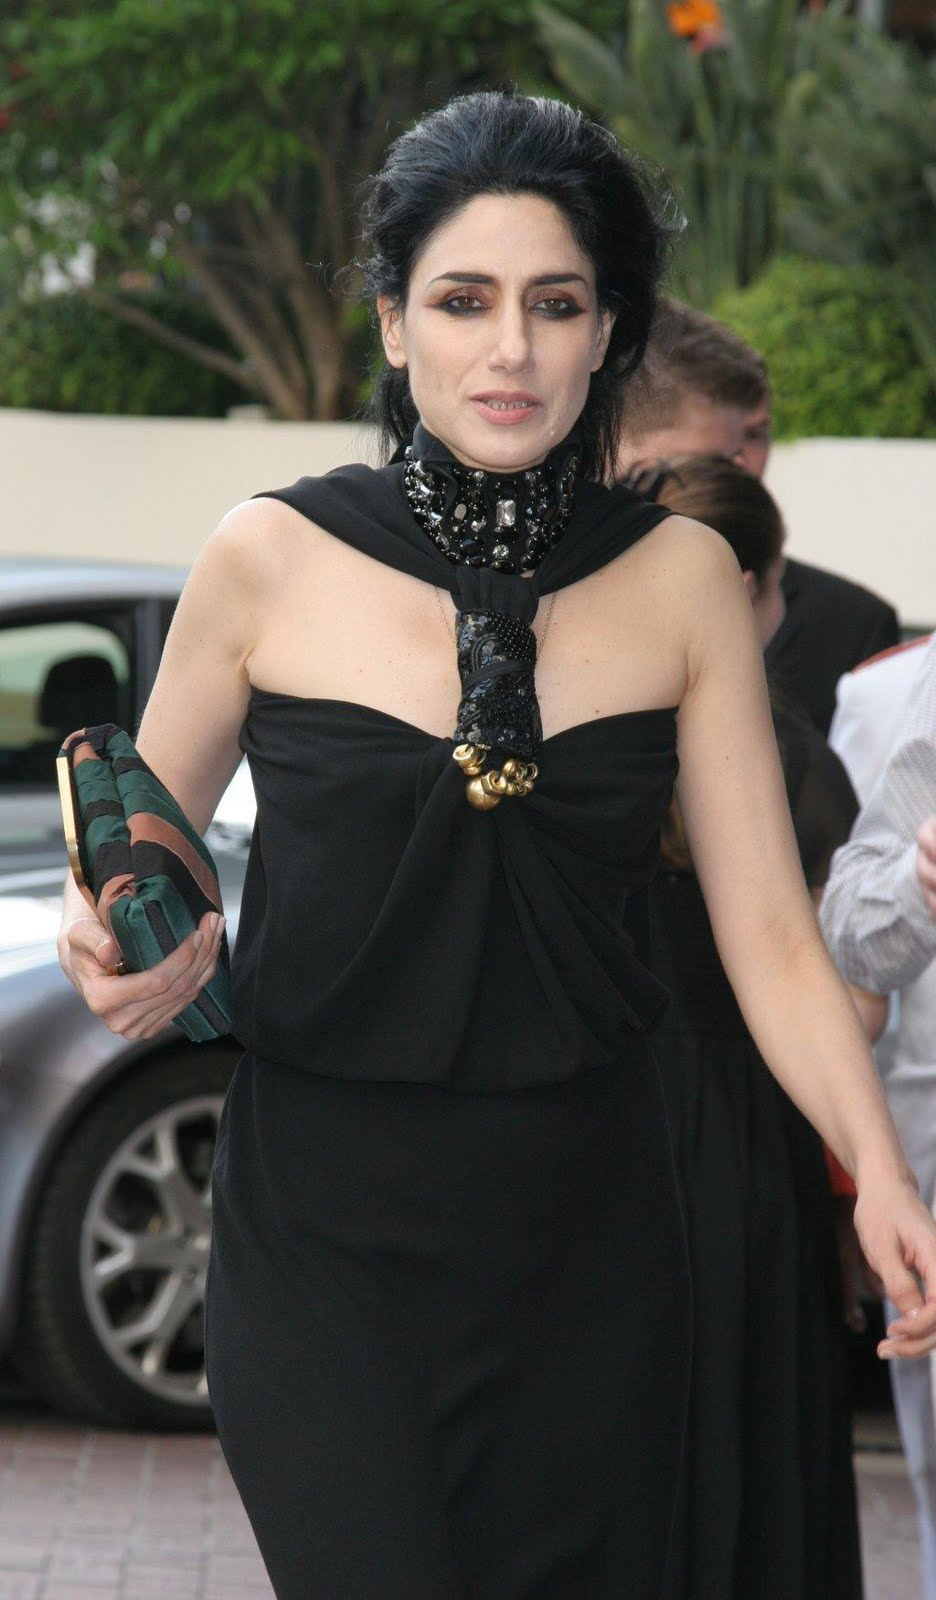 The Black Wardrobe 39 S Blog Style Icons Ronit Elkabetz Who